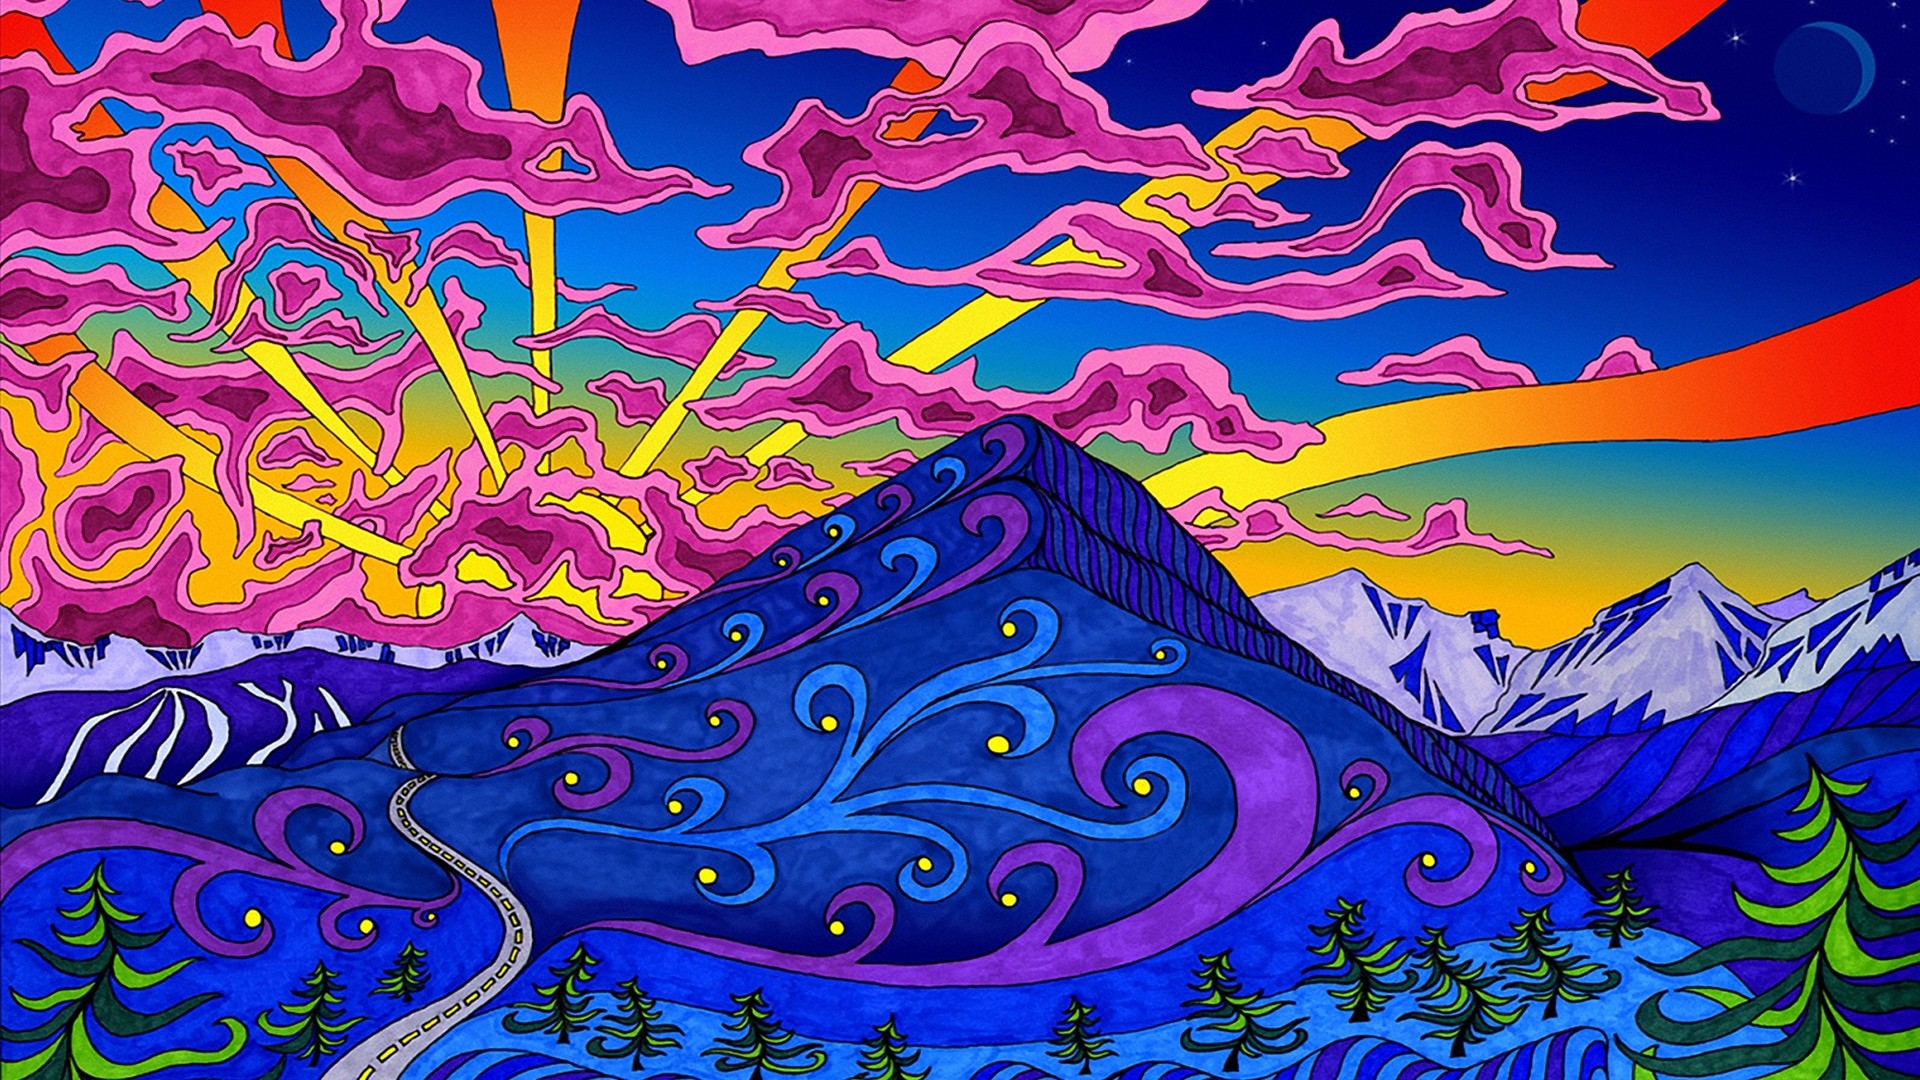 Mountains landscapes psychedelic artwork colors wallpaper ...